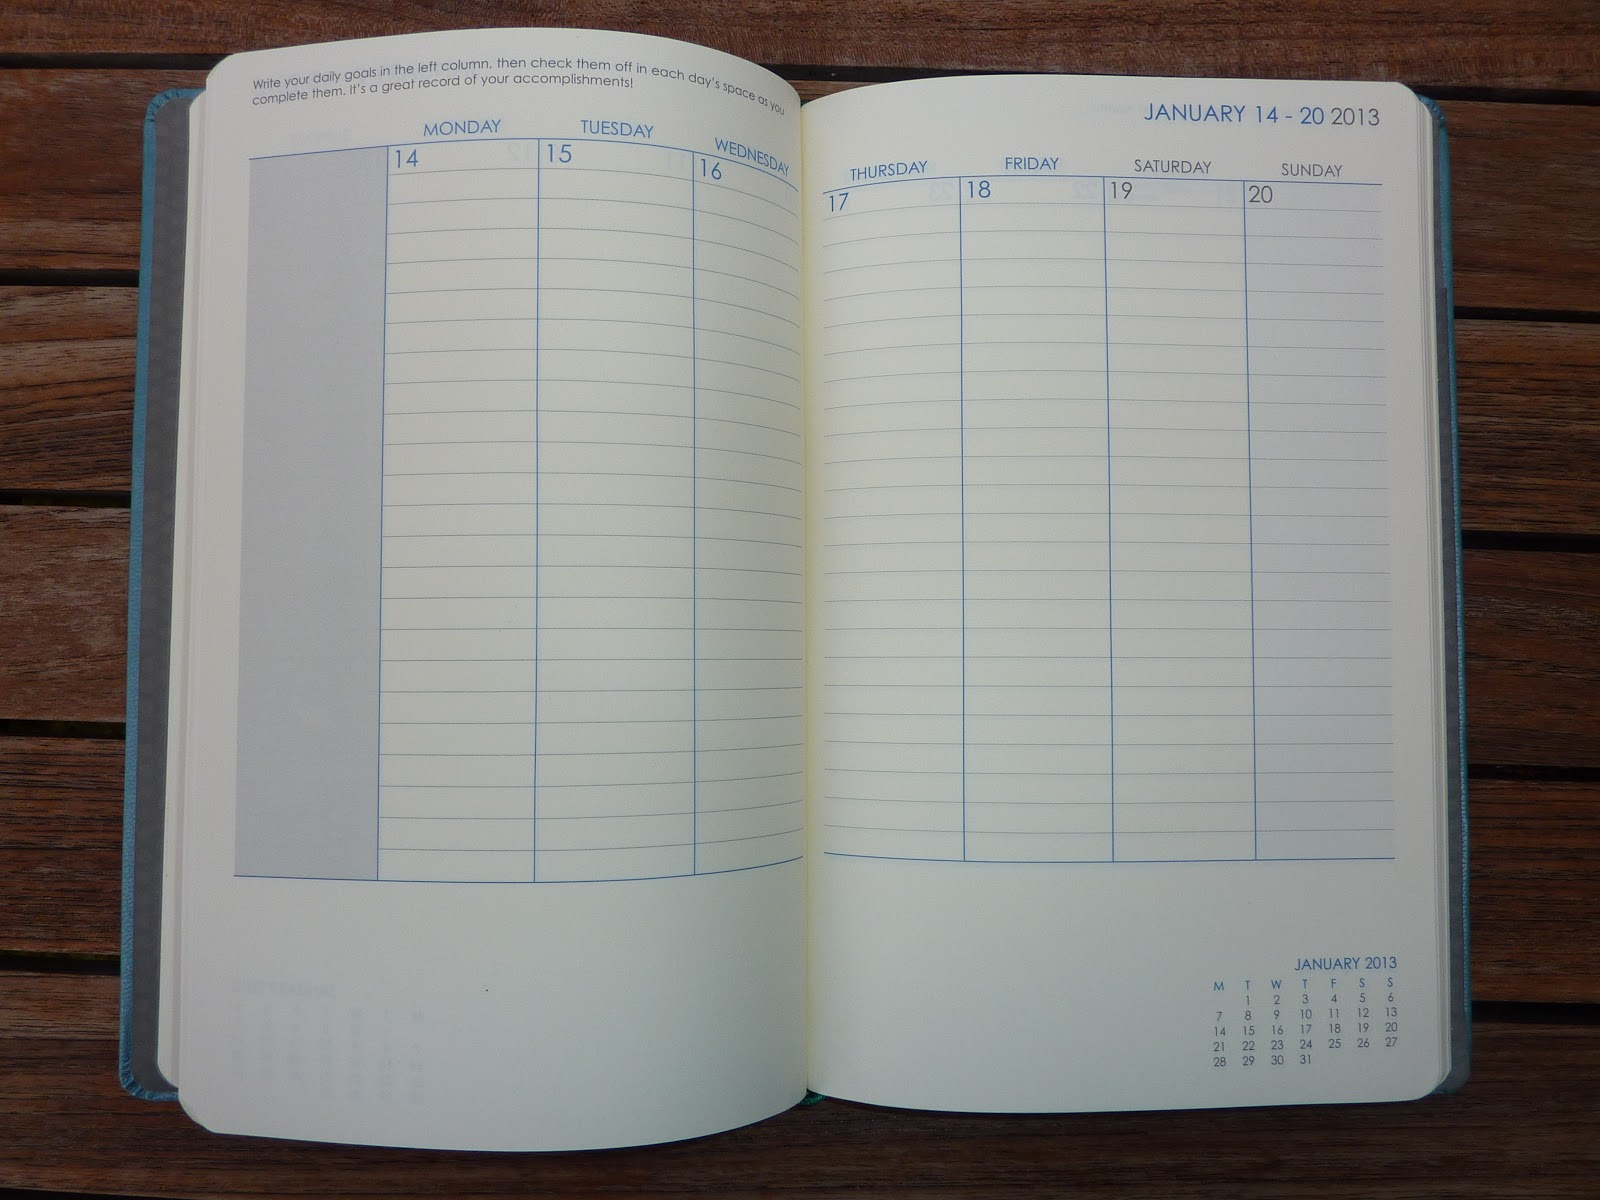 My Calendar Planner : Plannerisms using the planner as a goals workbook